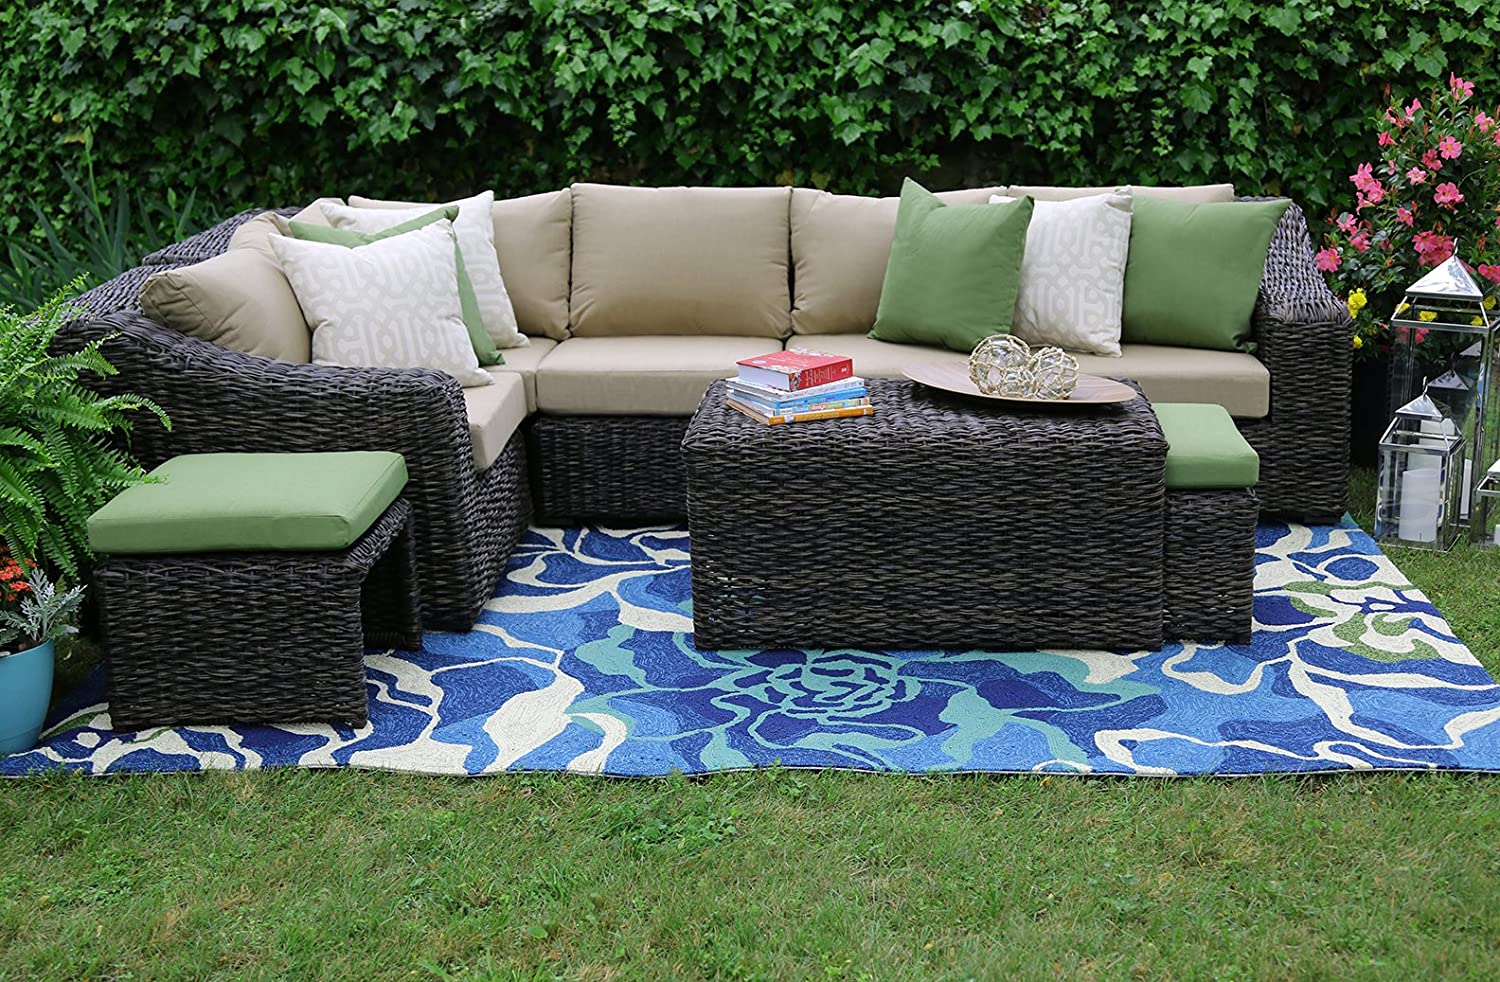 Awesome Amazon.com : AE Outdoor Williams 8 Piece Sectional With Sunbrella Fabric :  Garden U0026 Outdoor